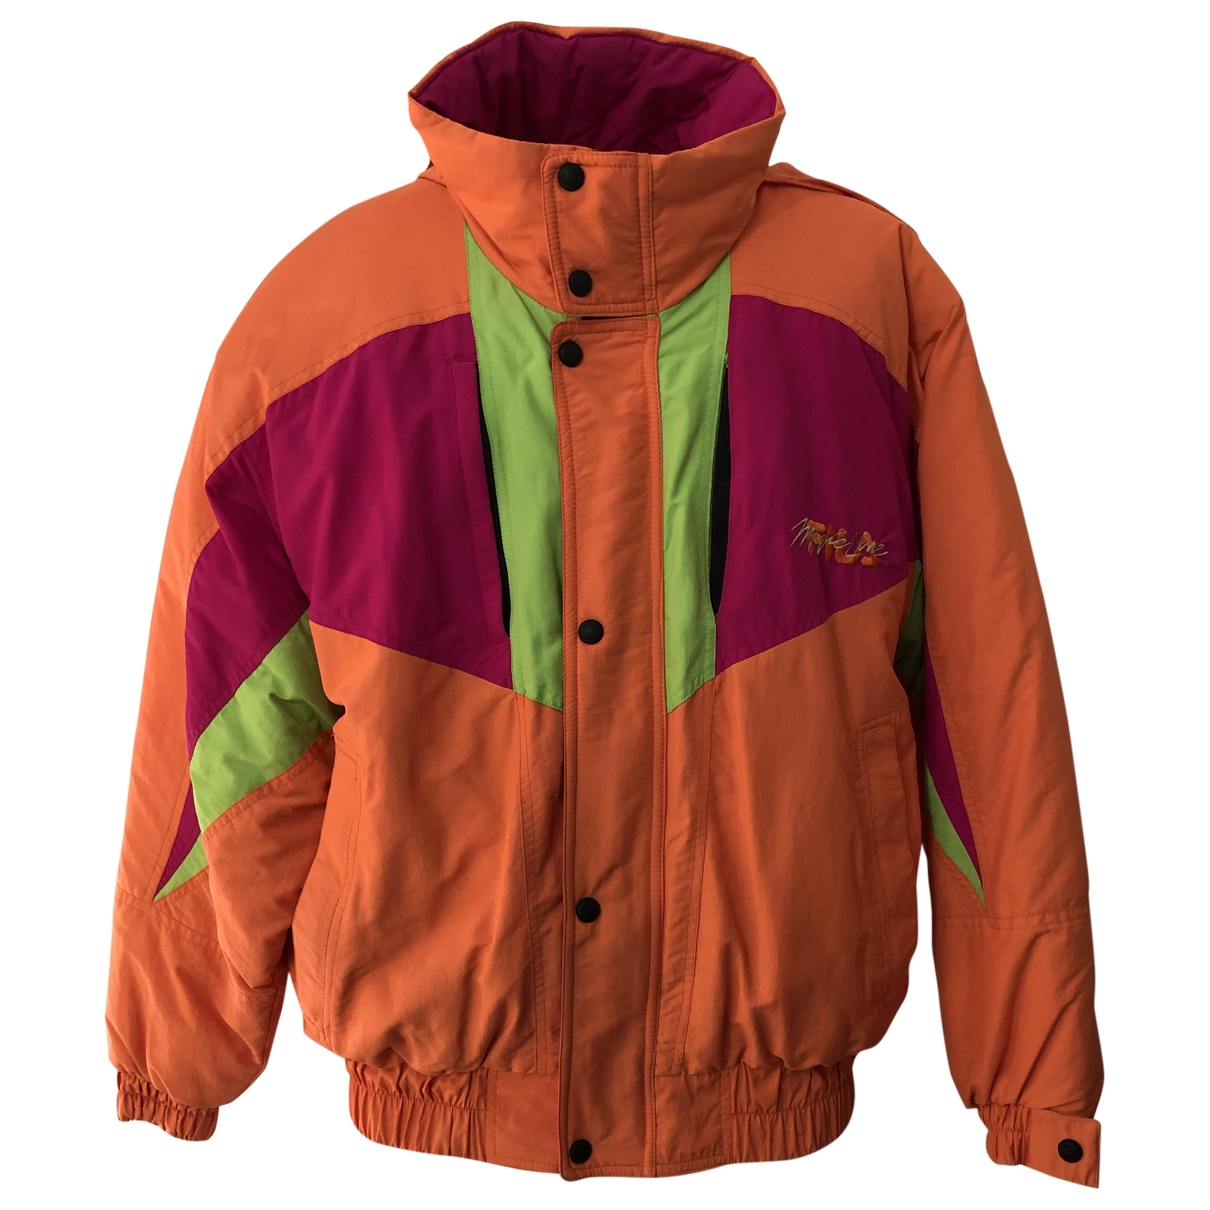 Fila \N Multicolour jacket  for Men L International